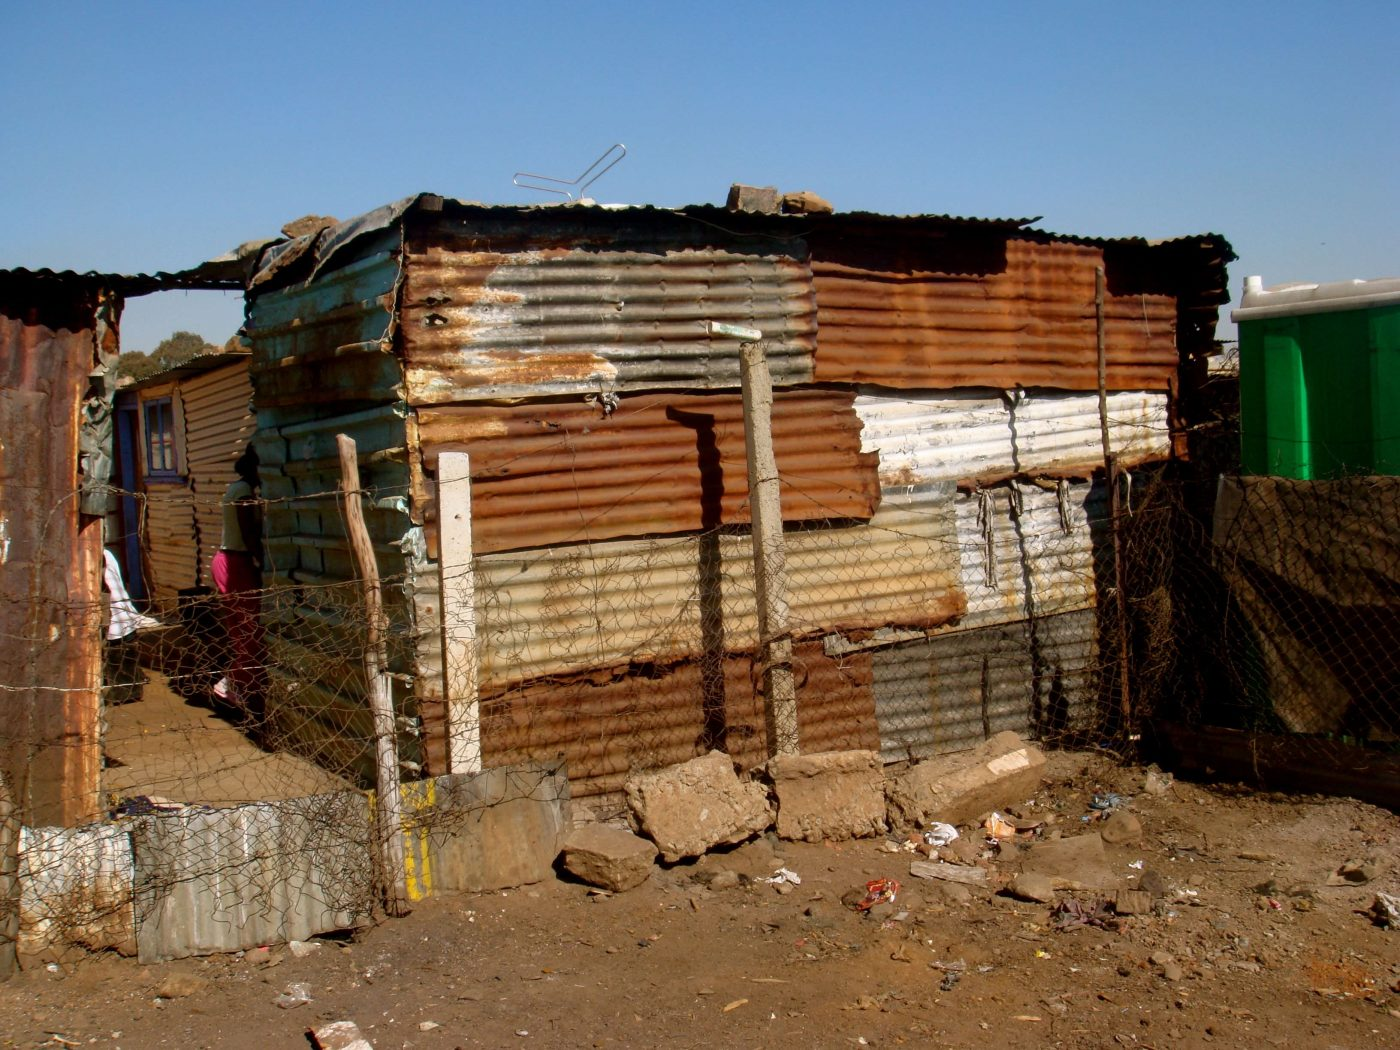 Backpacking in South Africa – Johannesburg, Soweto ...